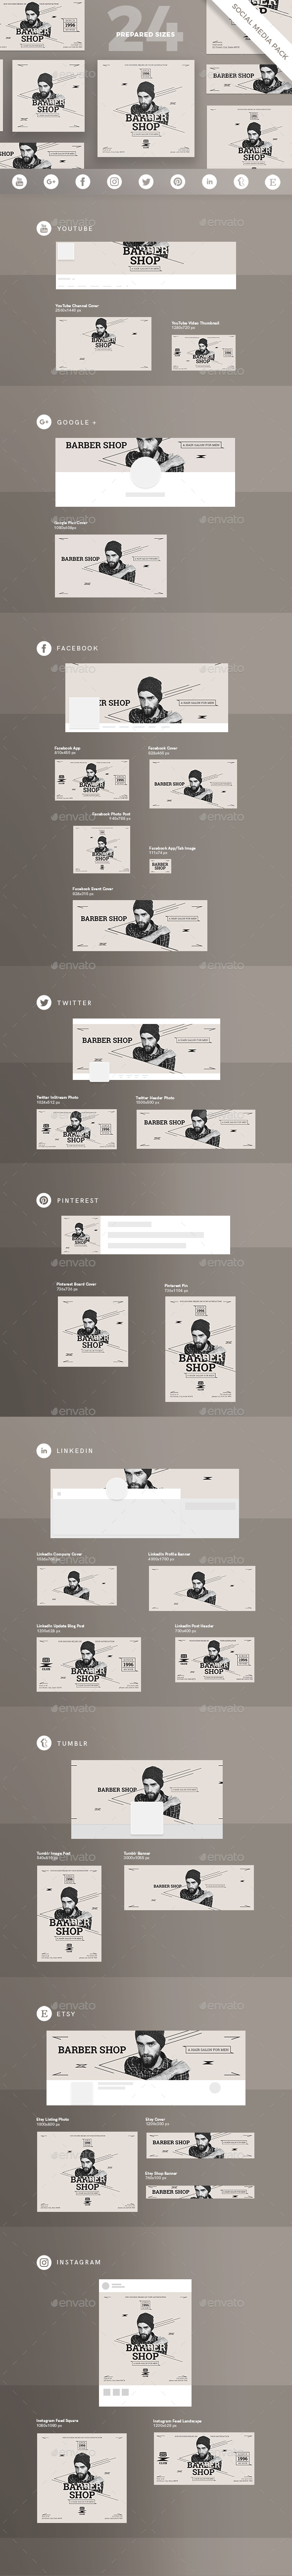 GraphicRiver Barber Shop Social Media Pack 21176138